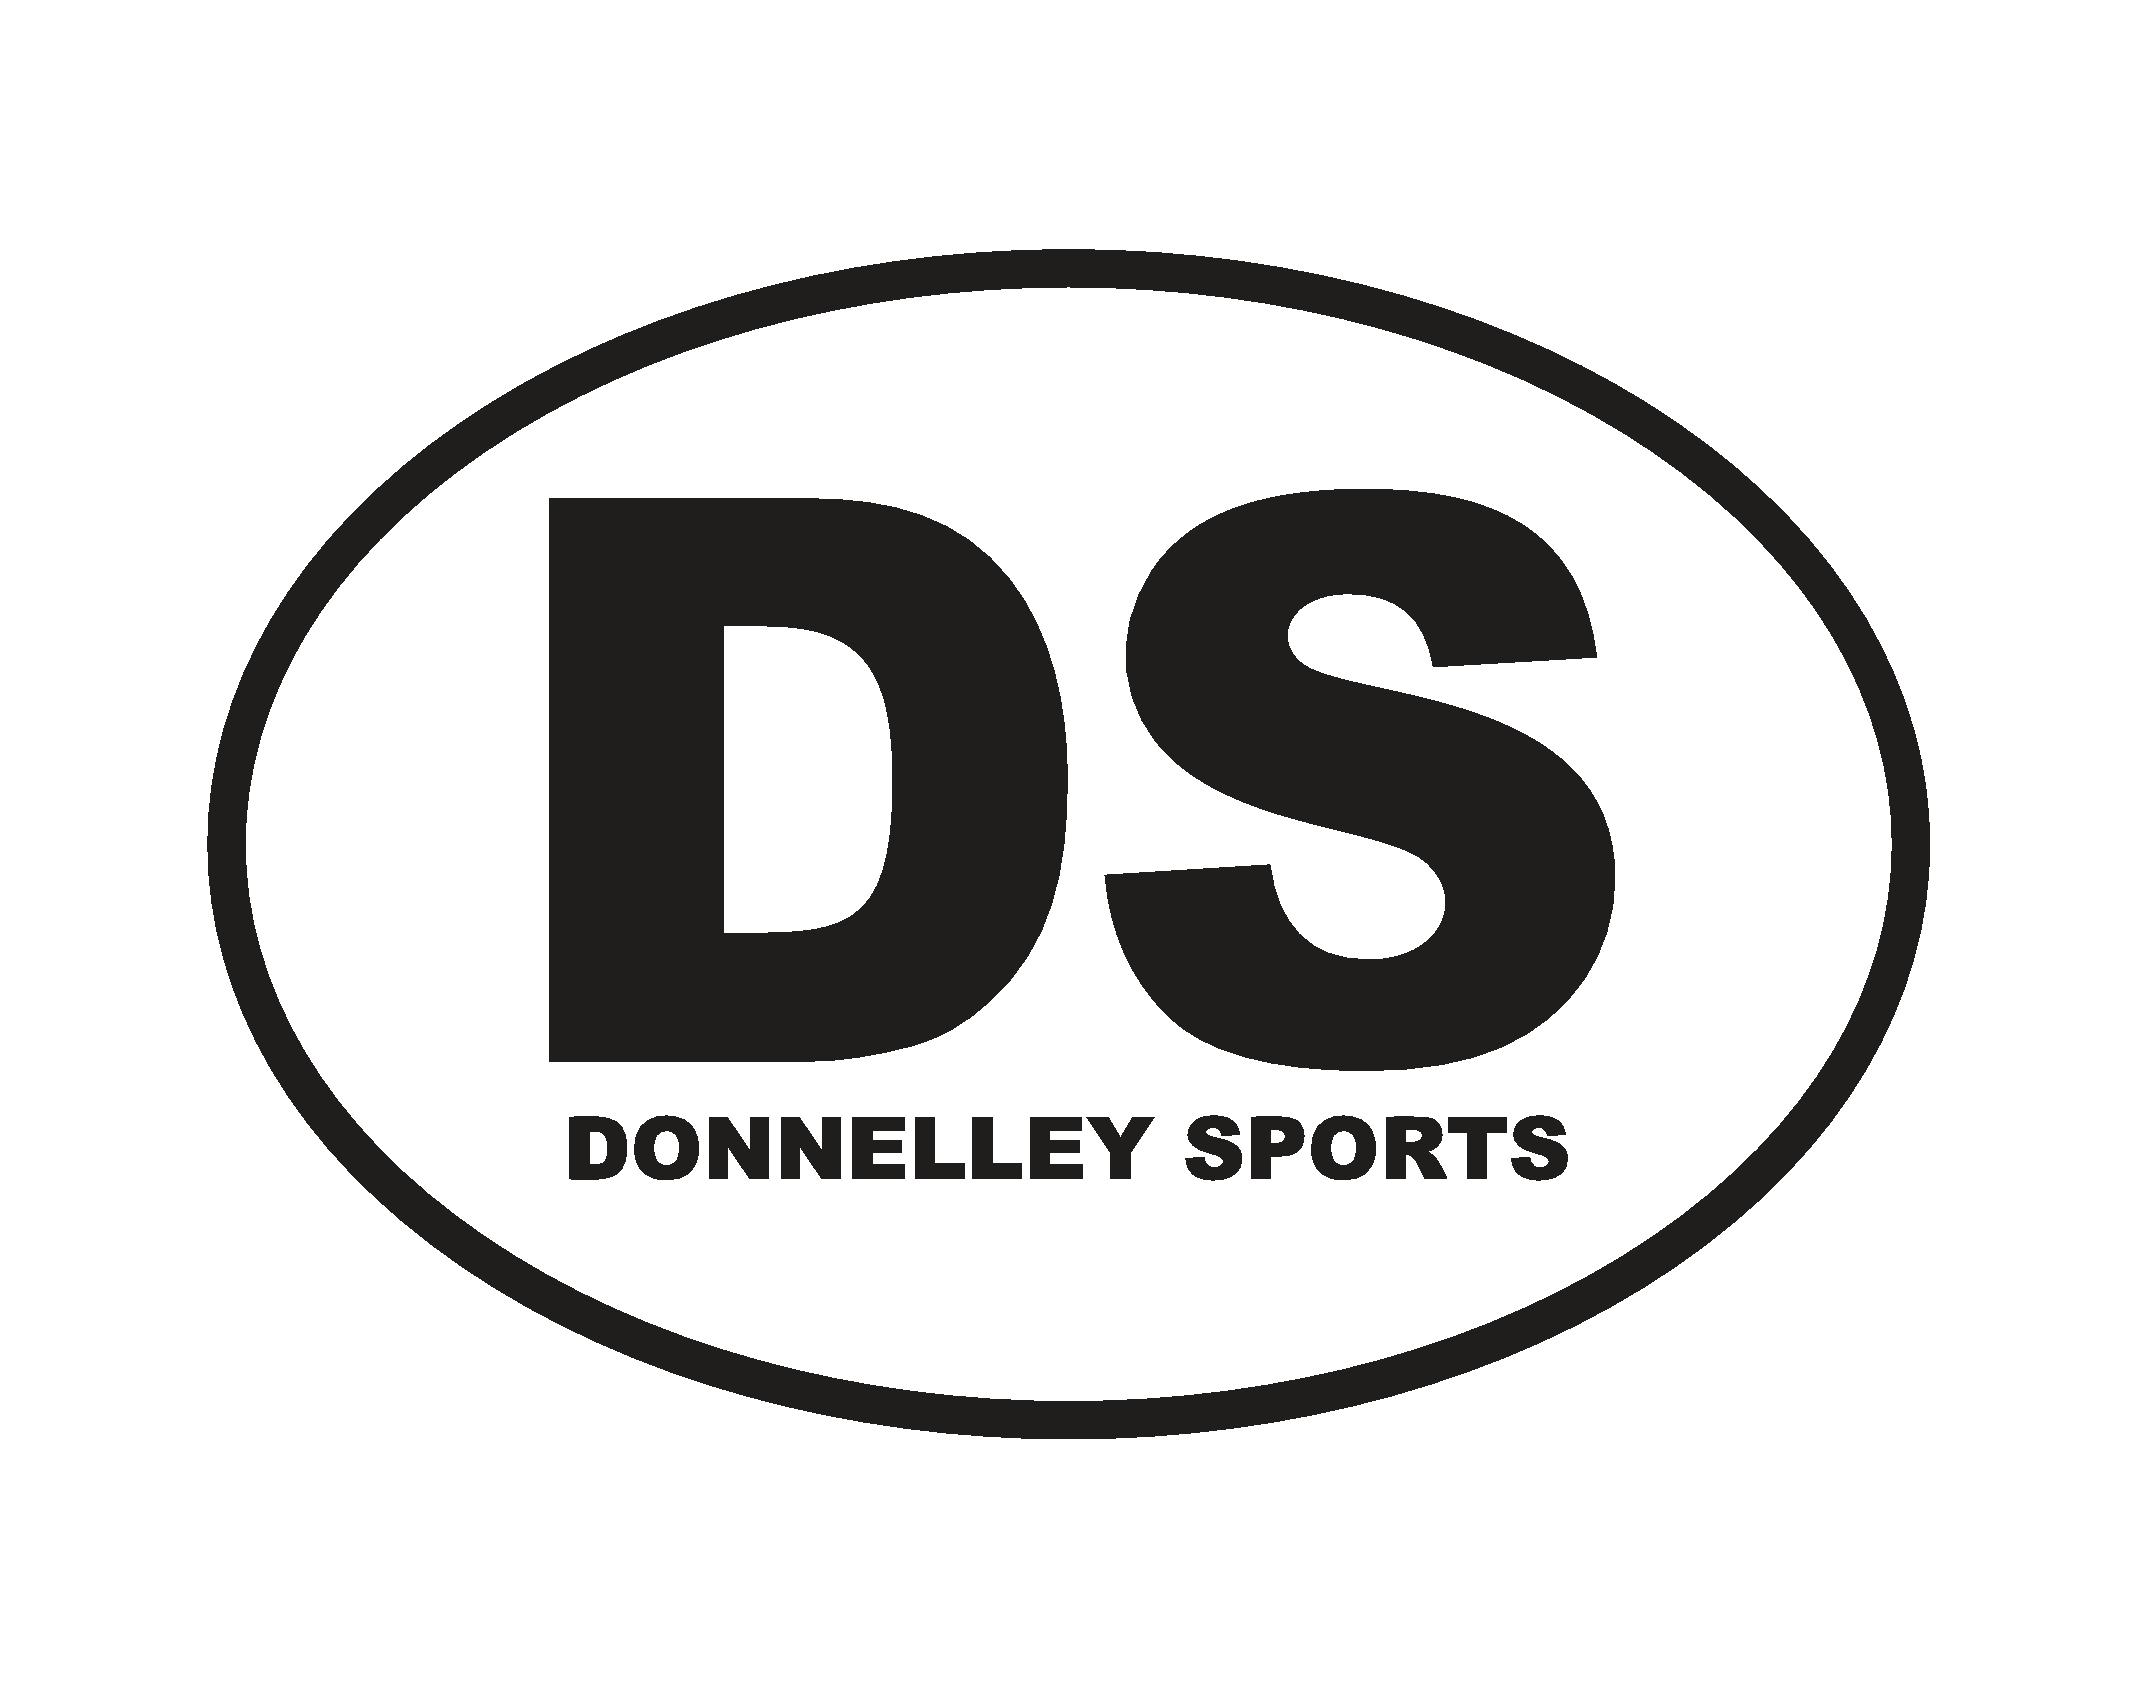 DONNELLEY SPORTS DS-page-001.jpg